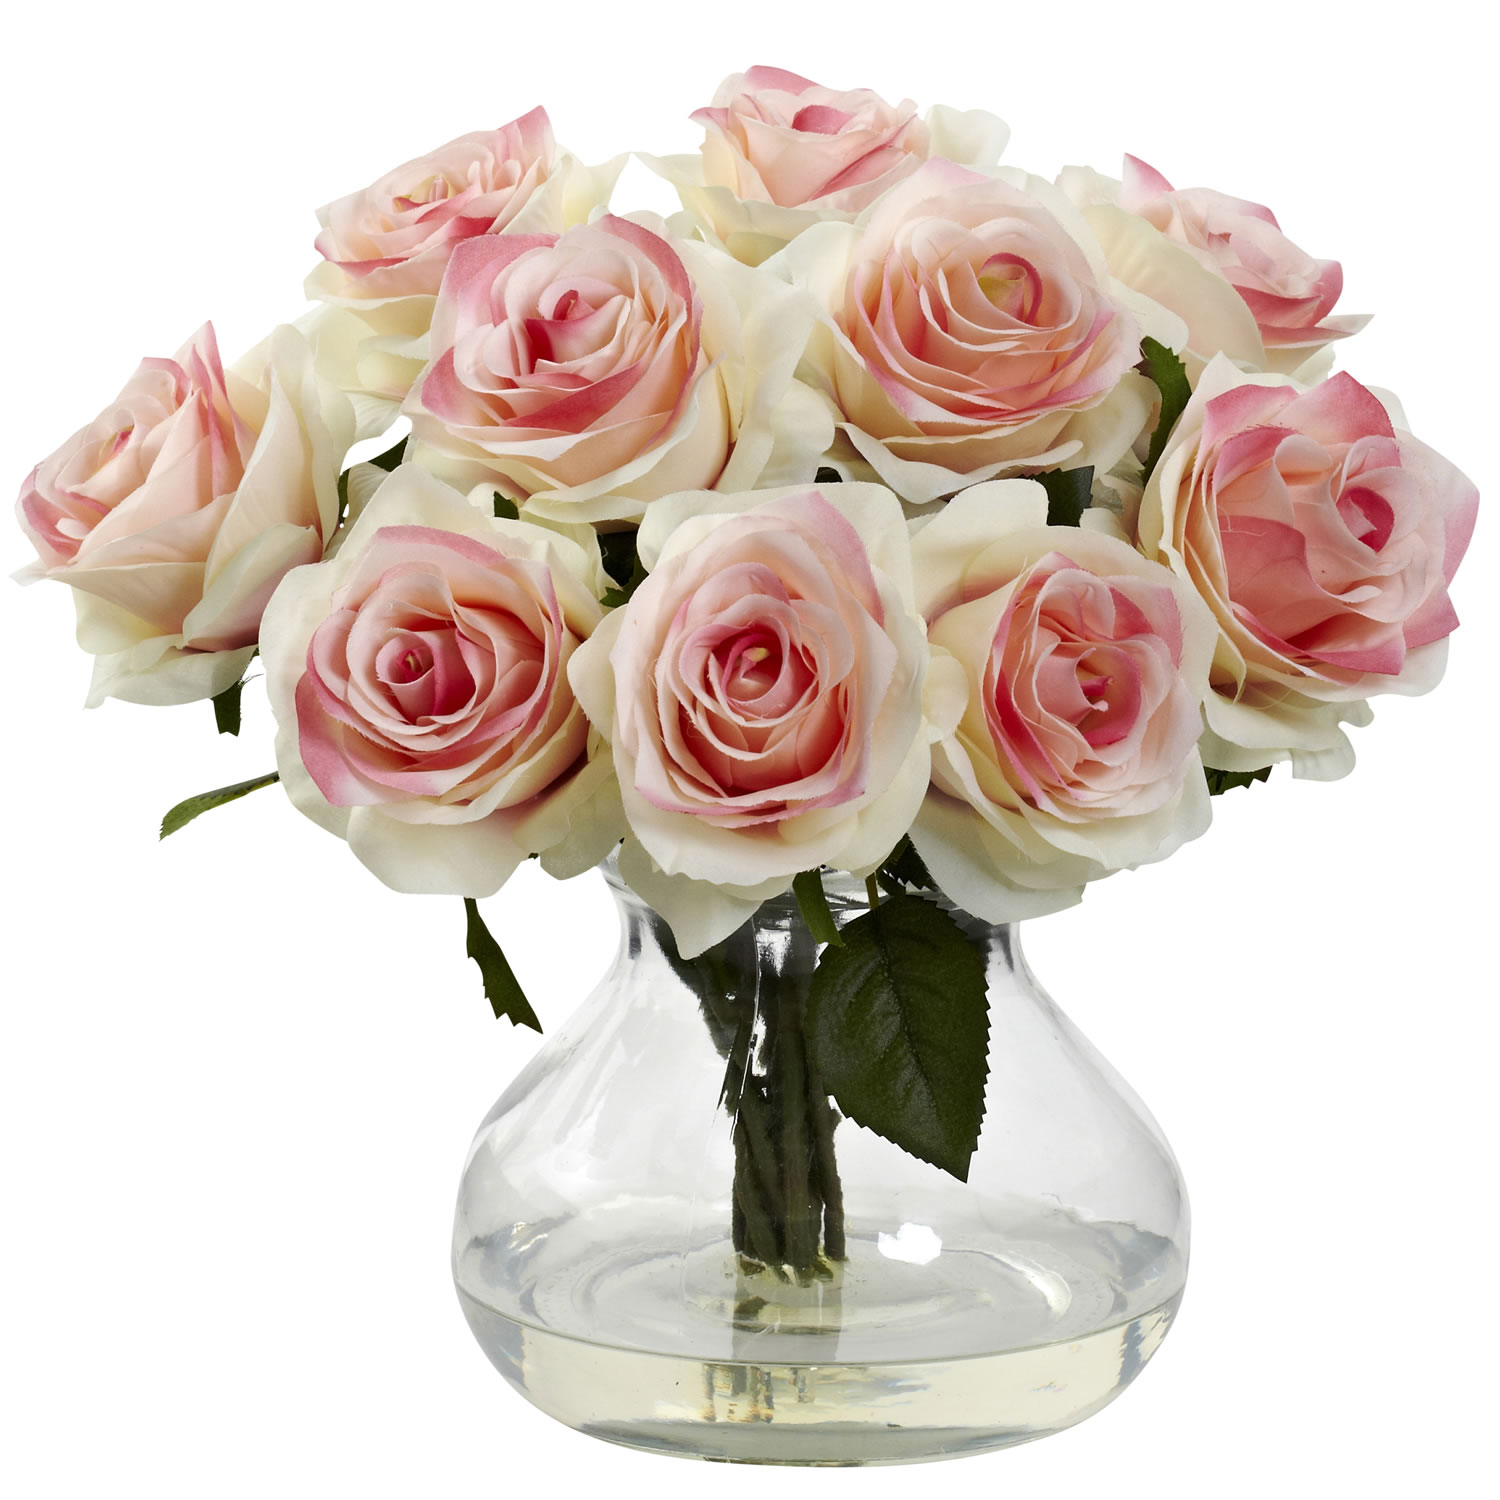 Blooming Bouquet Roses Wvase Water Look Light Pink Rose Arrangement